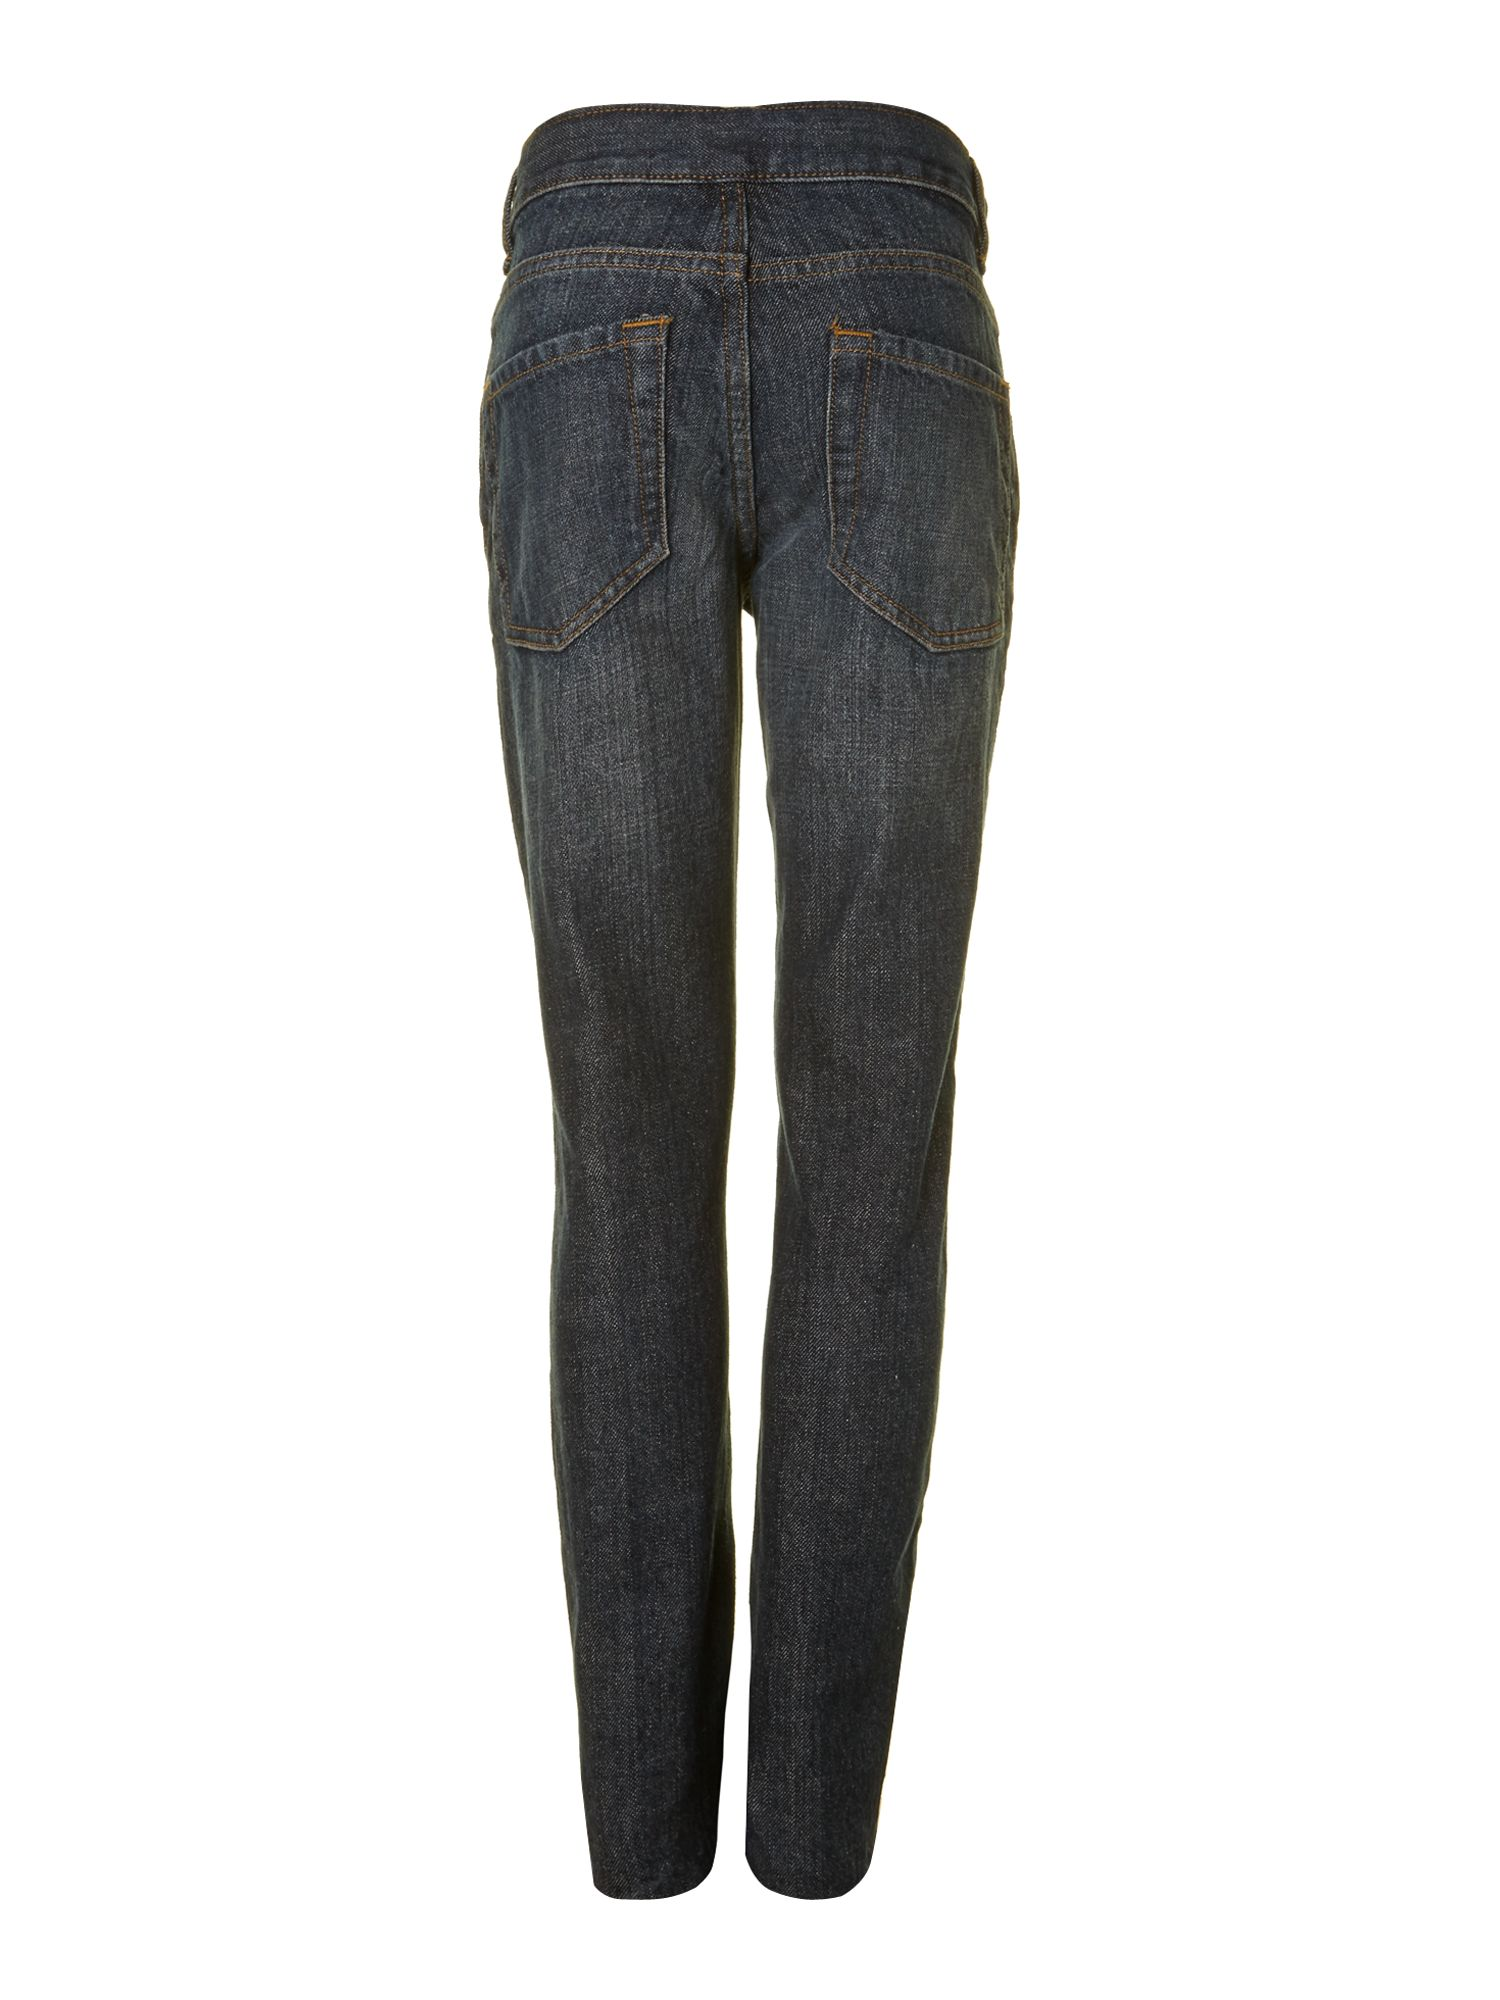 Boy`s slim fit iron knee jeans